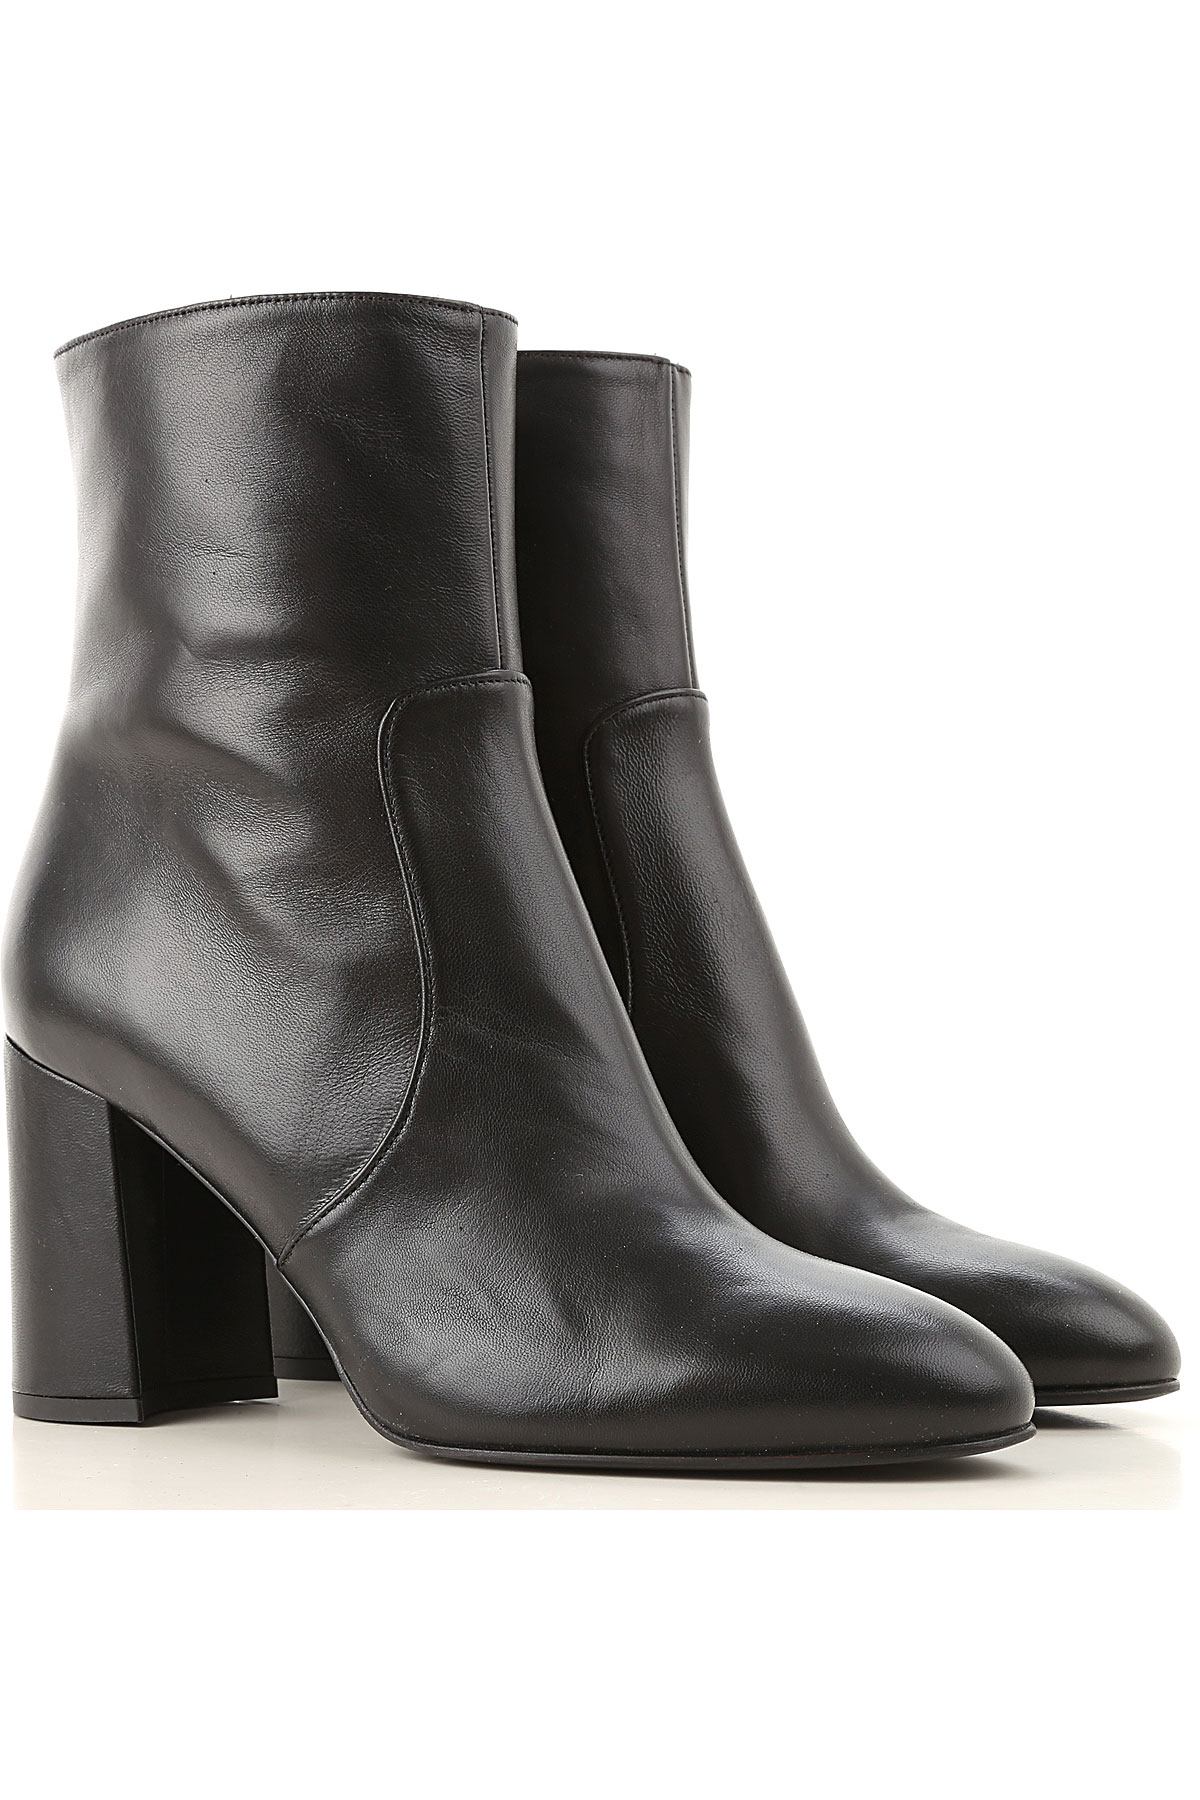 Lella Baldi Boots for Women, Booties On Sale, Black, Leather, 2019, 7 8